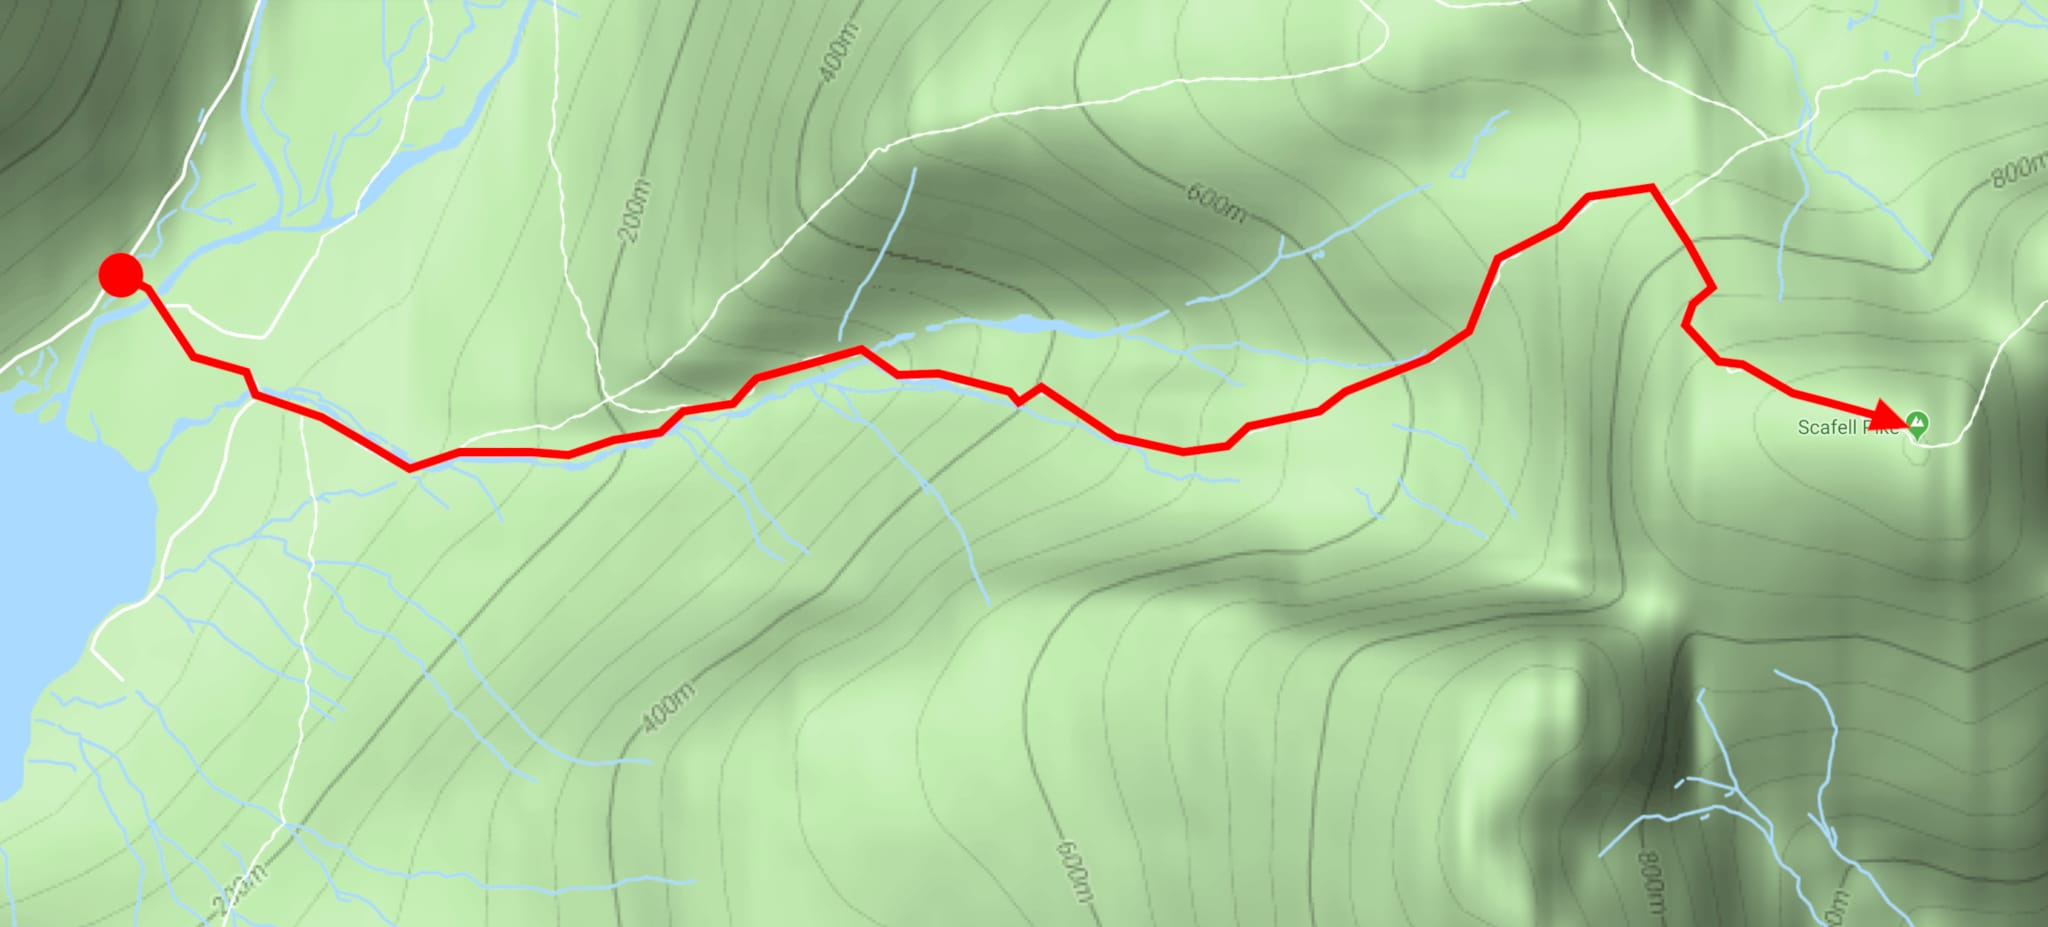 The route to the summit of Scafell Pike from the National Trust Wasdale Head campsite.